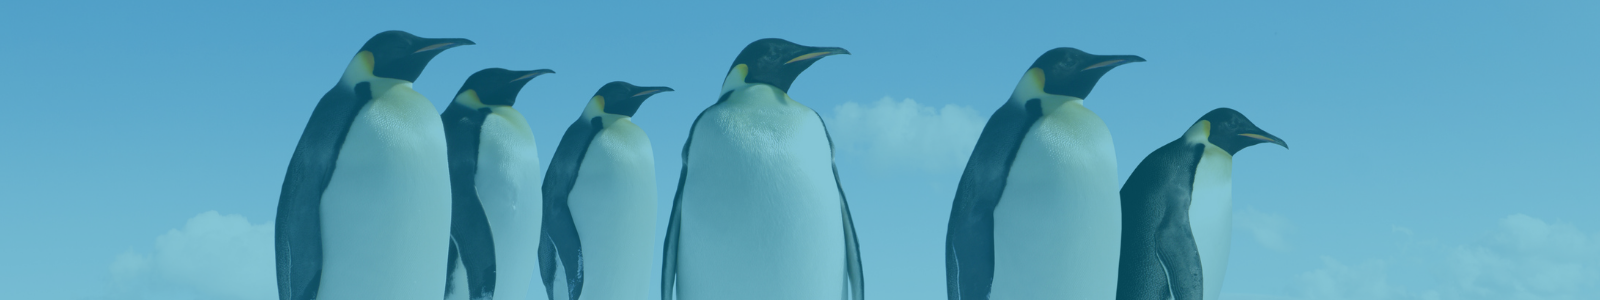 10 Penguin Facts